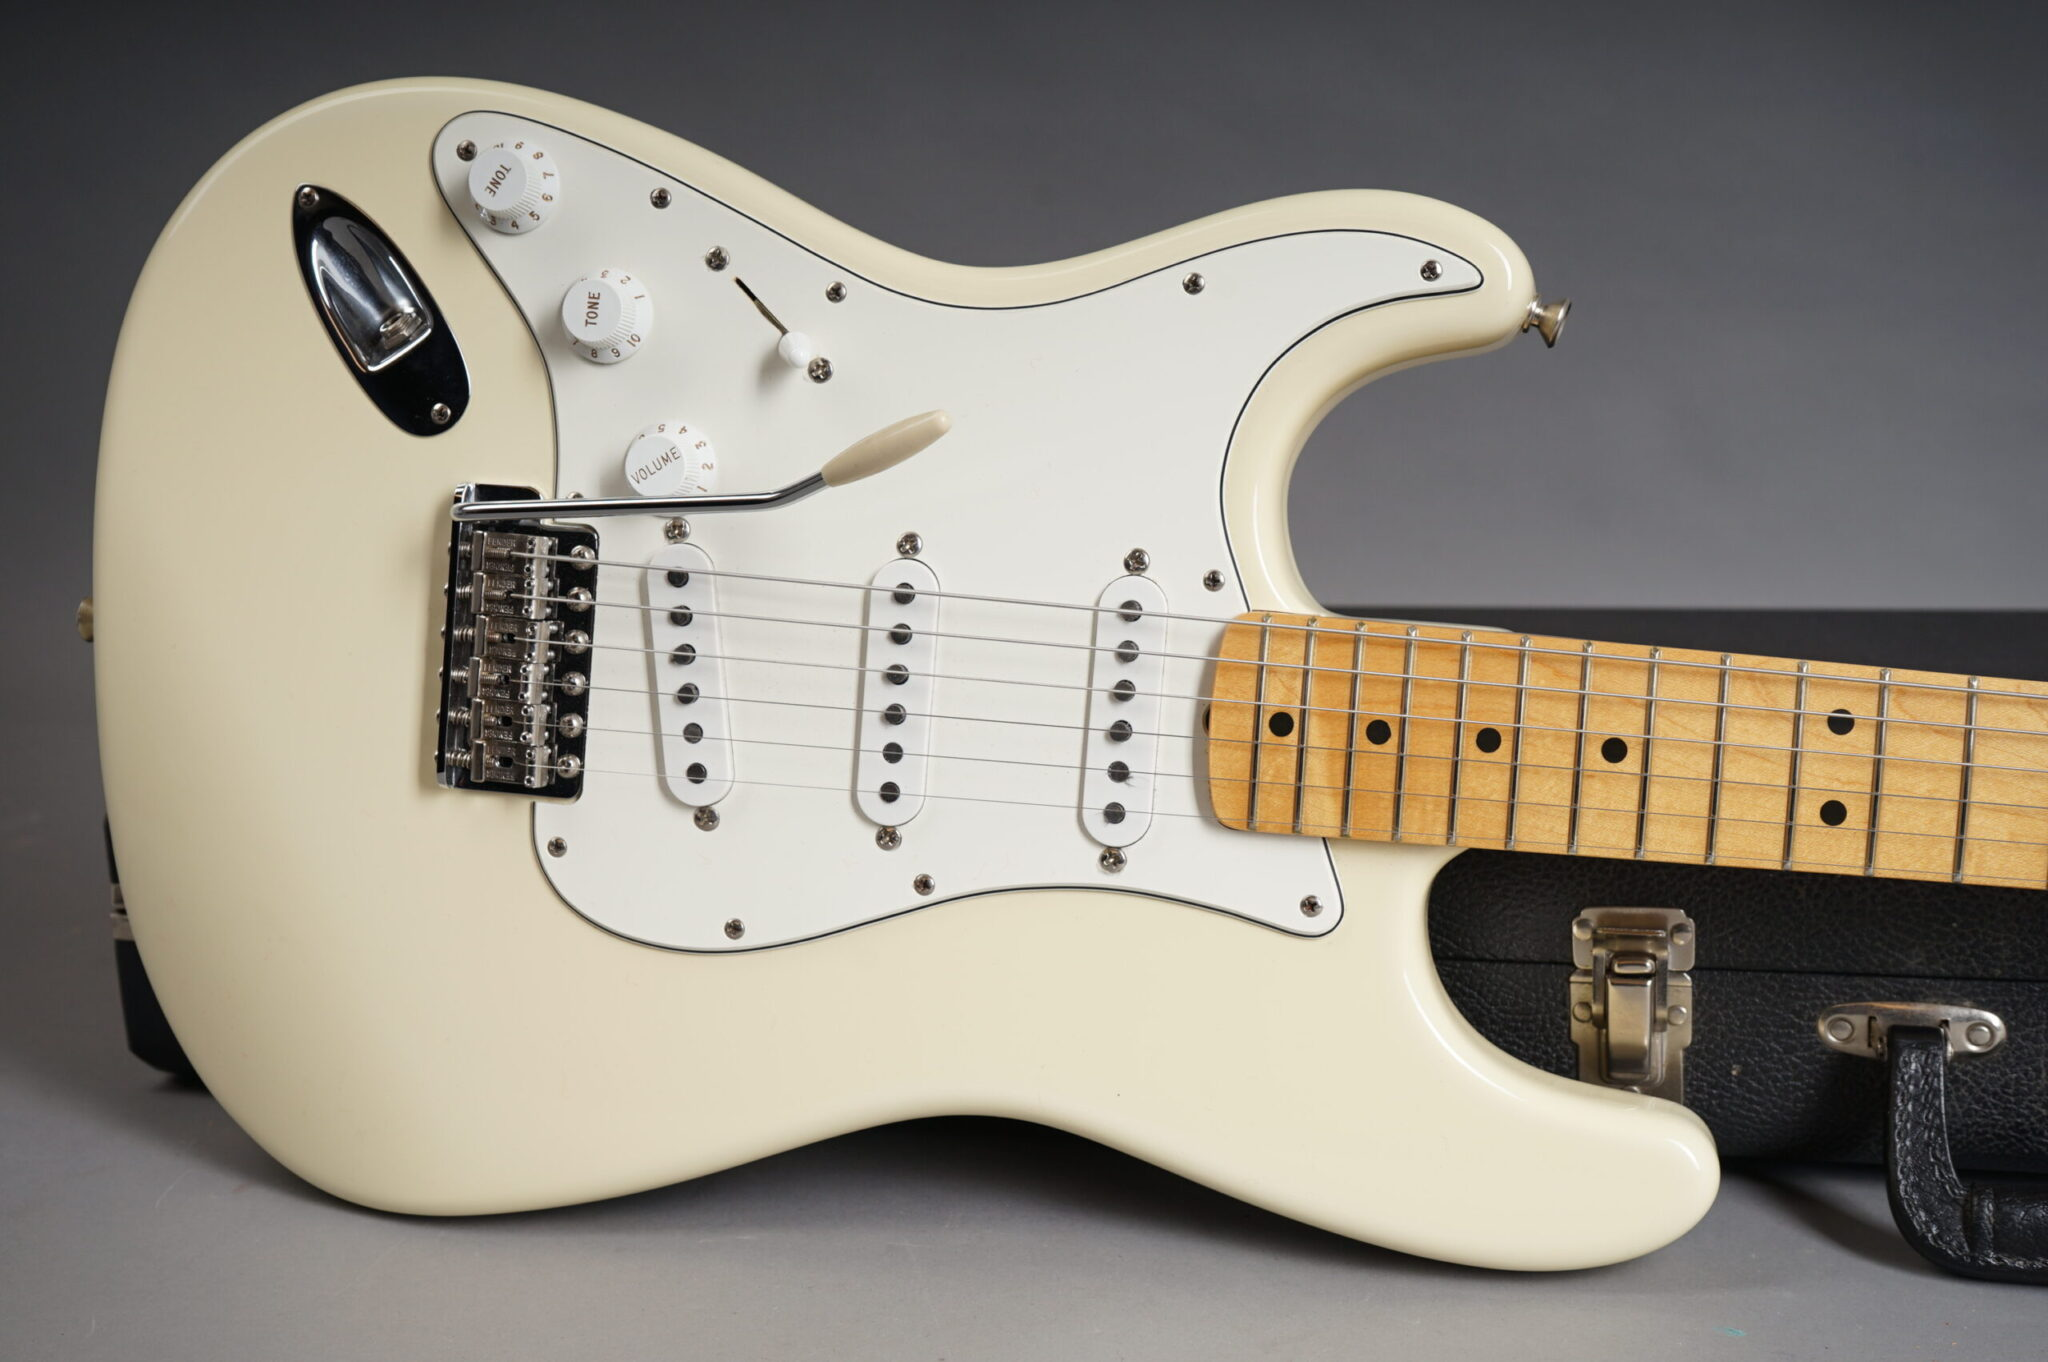 https://guitarpoint.de/app/uploads/products/1997-fender-jimi-hendrix-tribute-stratocaster-olympic-white/1997-Fender-Hendrix-Strat-Olympic-White-TN70634-9-scaled-2048x1362.jpg